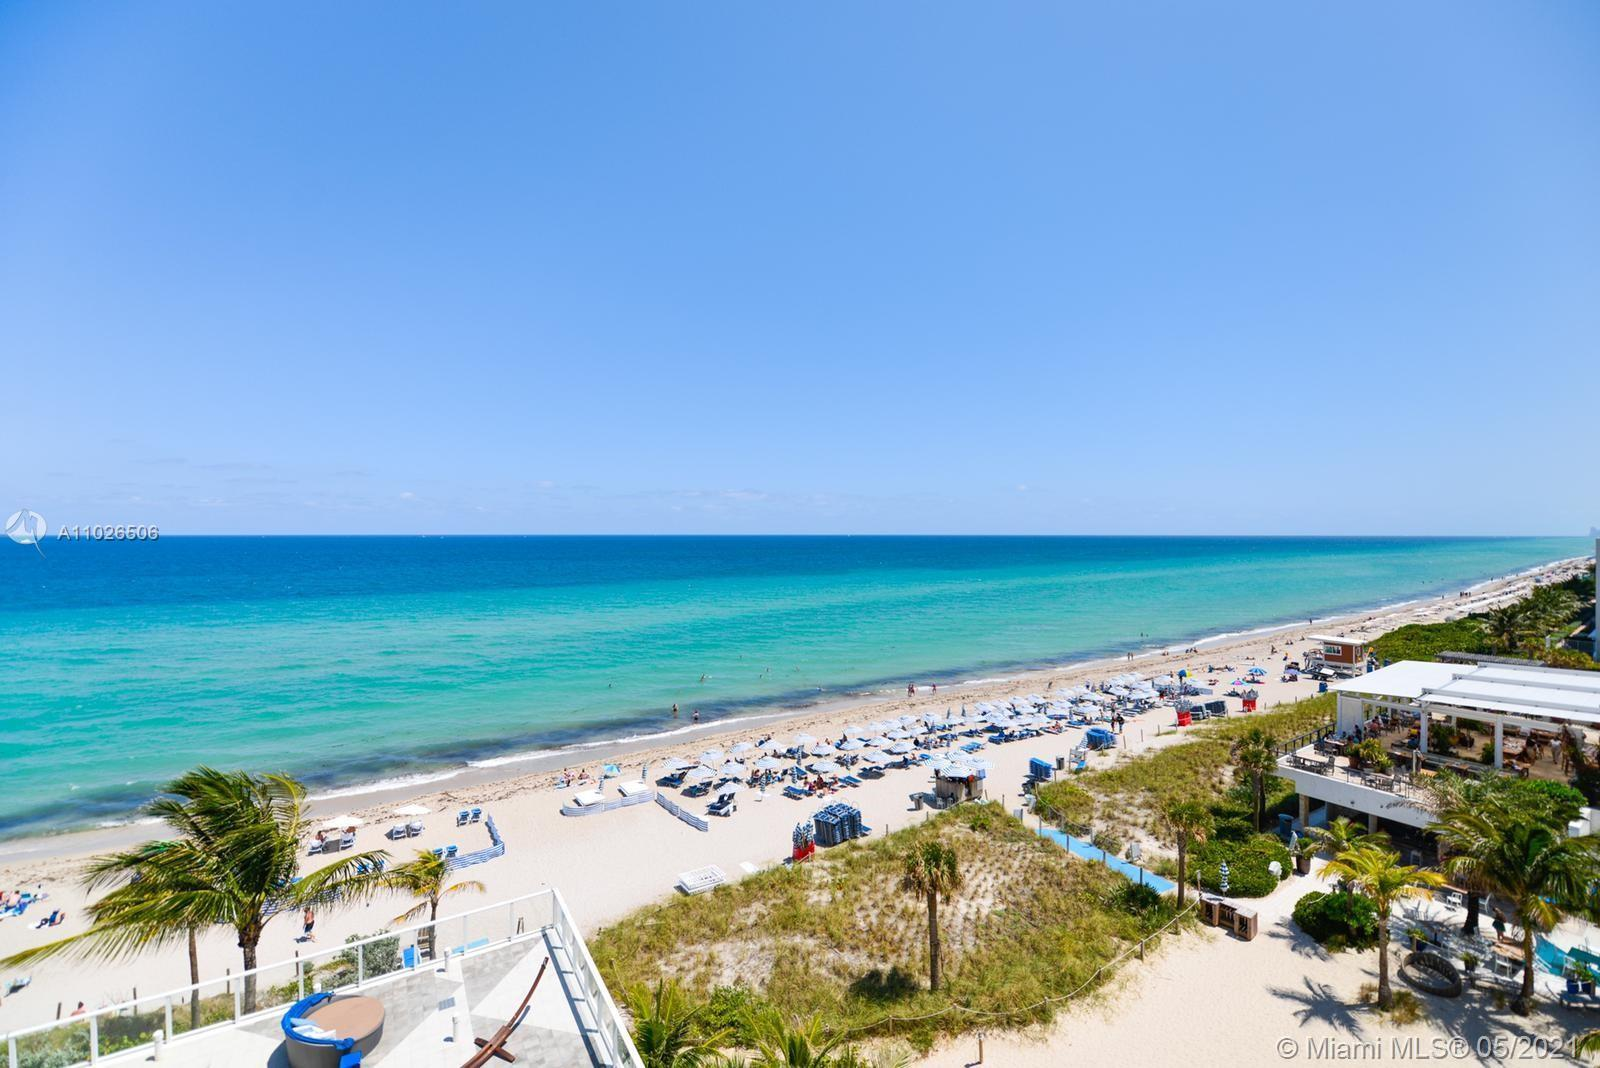 SPECTACULAR 3 BEDS + DEN/OFFICE 3.5 BATHS RESIDENCE IN THIS LUXURY AND PRIVATE APOGEE BEACH. GORGEOU